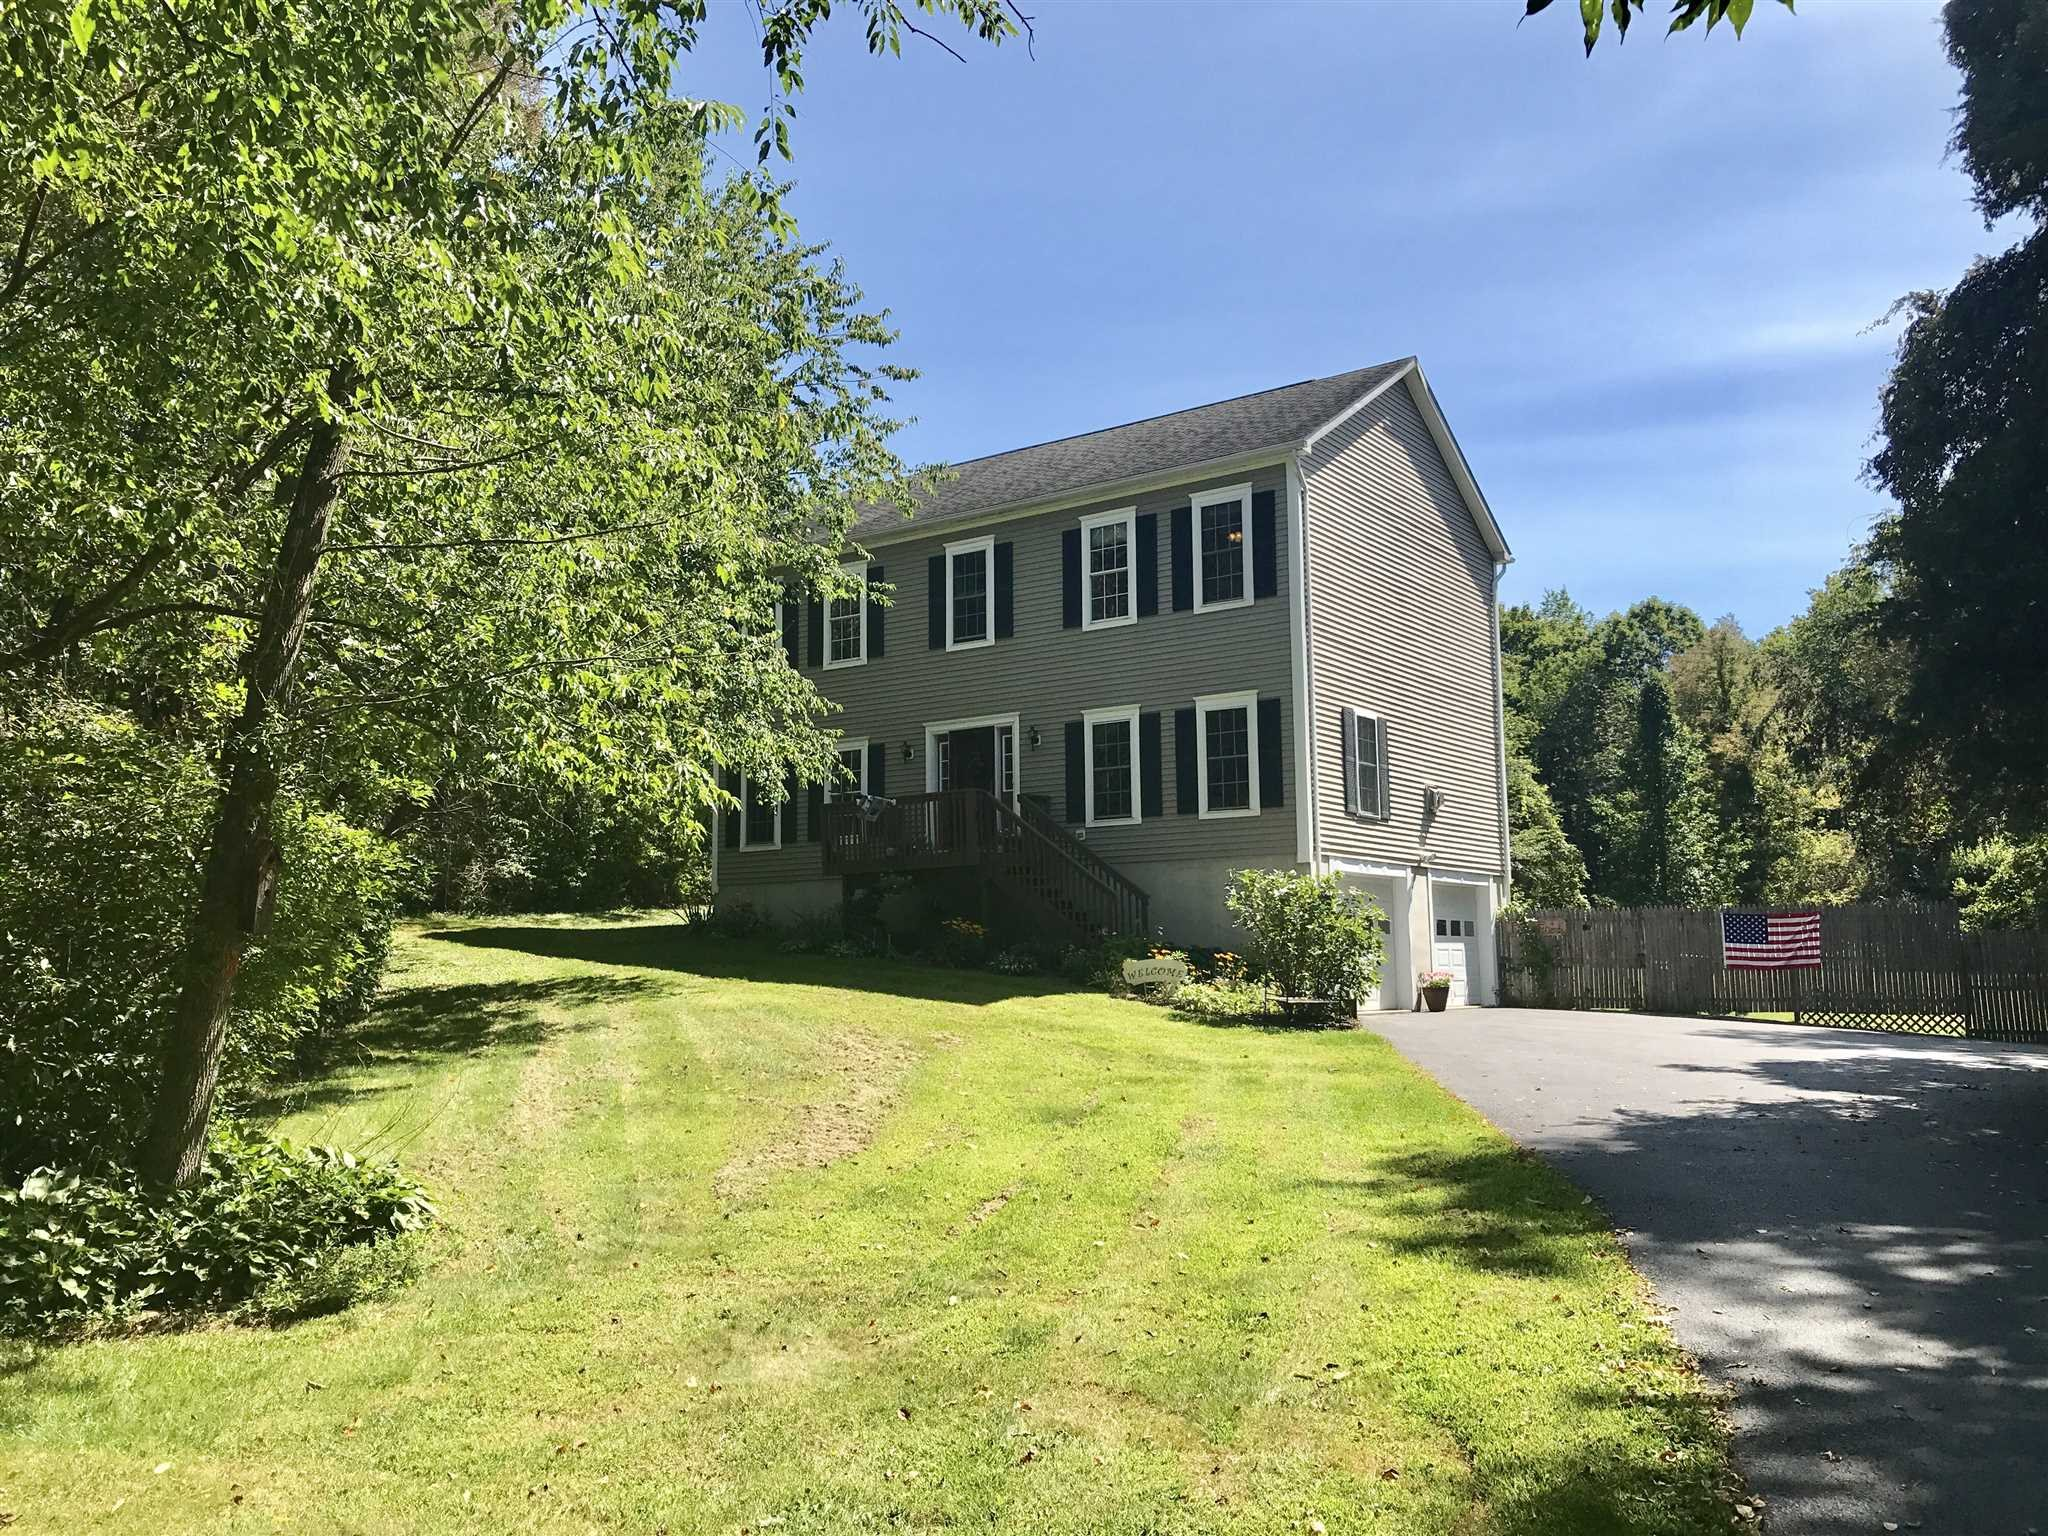 Single Family Home for Sale at 298 CRUM ELBOW 298 CRUM ELBOW Hyde Park, New York 12538 United States